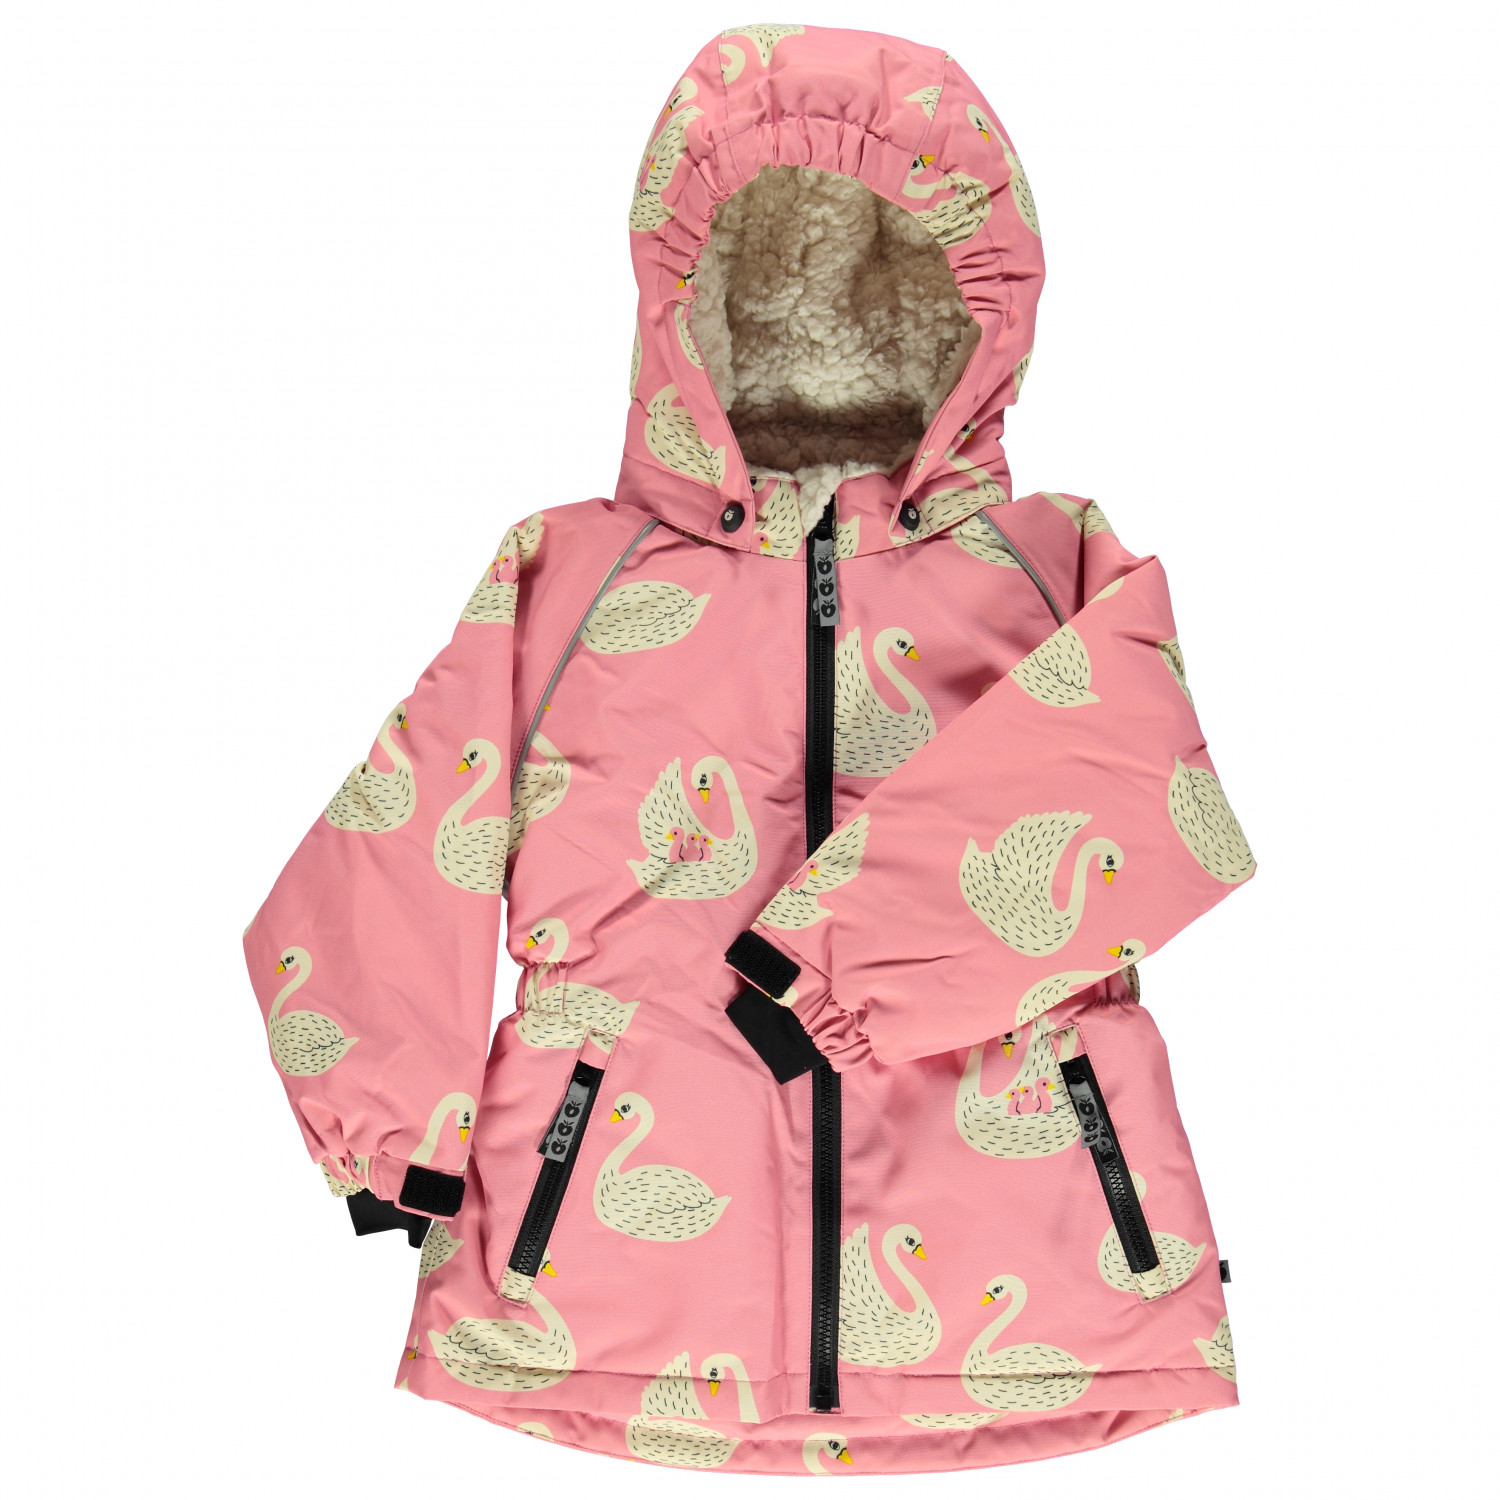 Smafolk Winter Jacket with Swans Winterjacke Kinder online